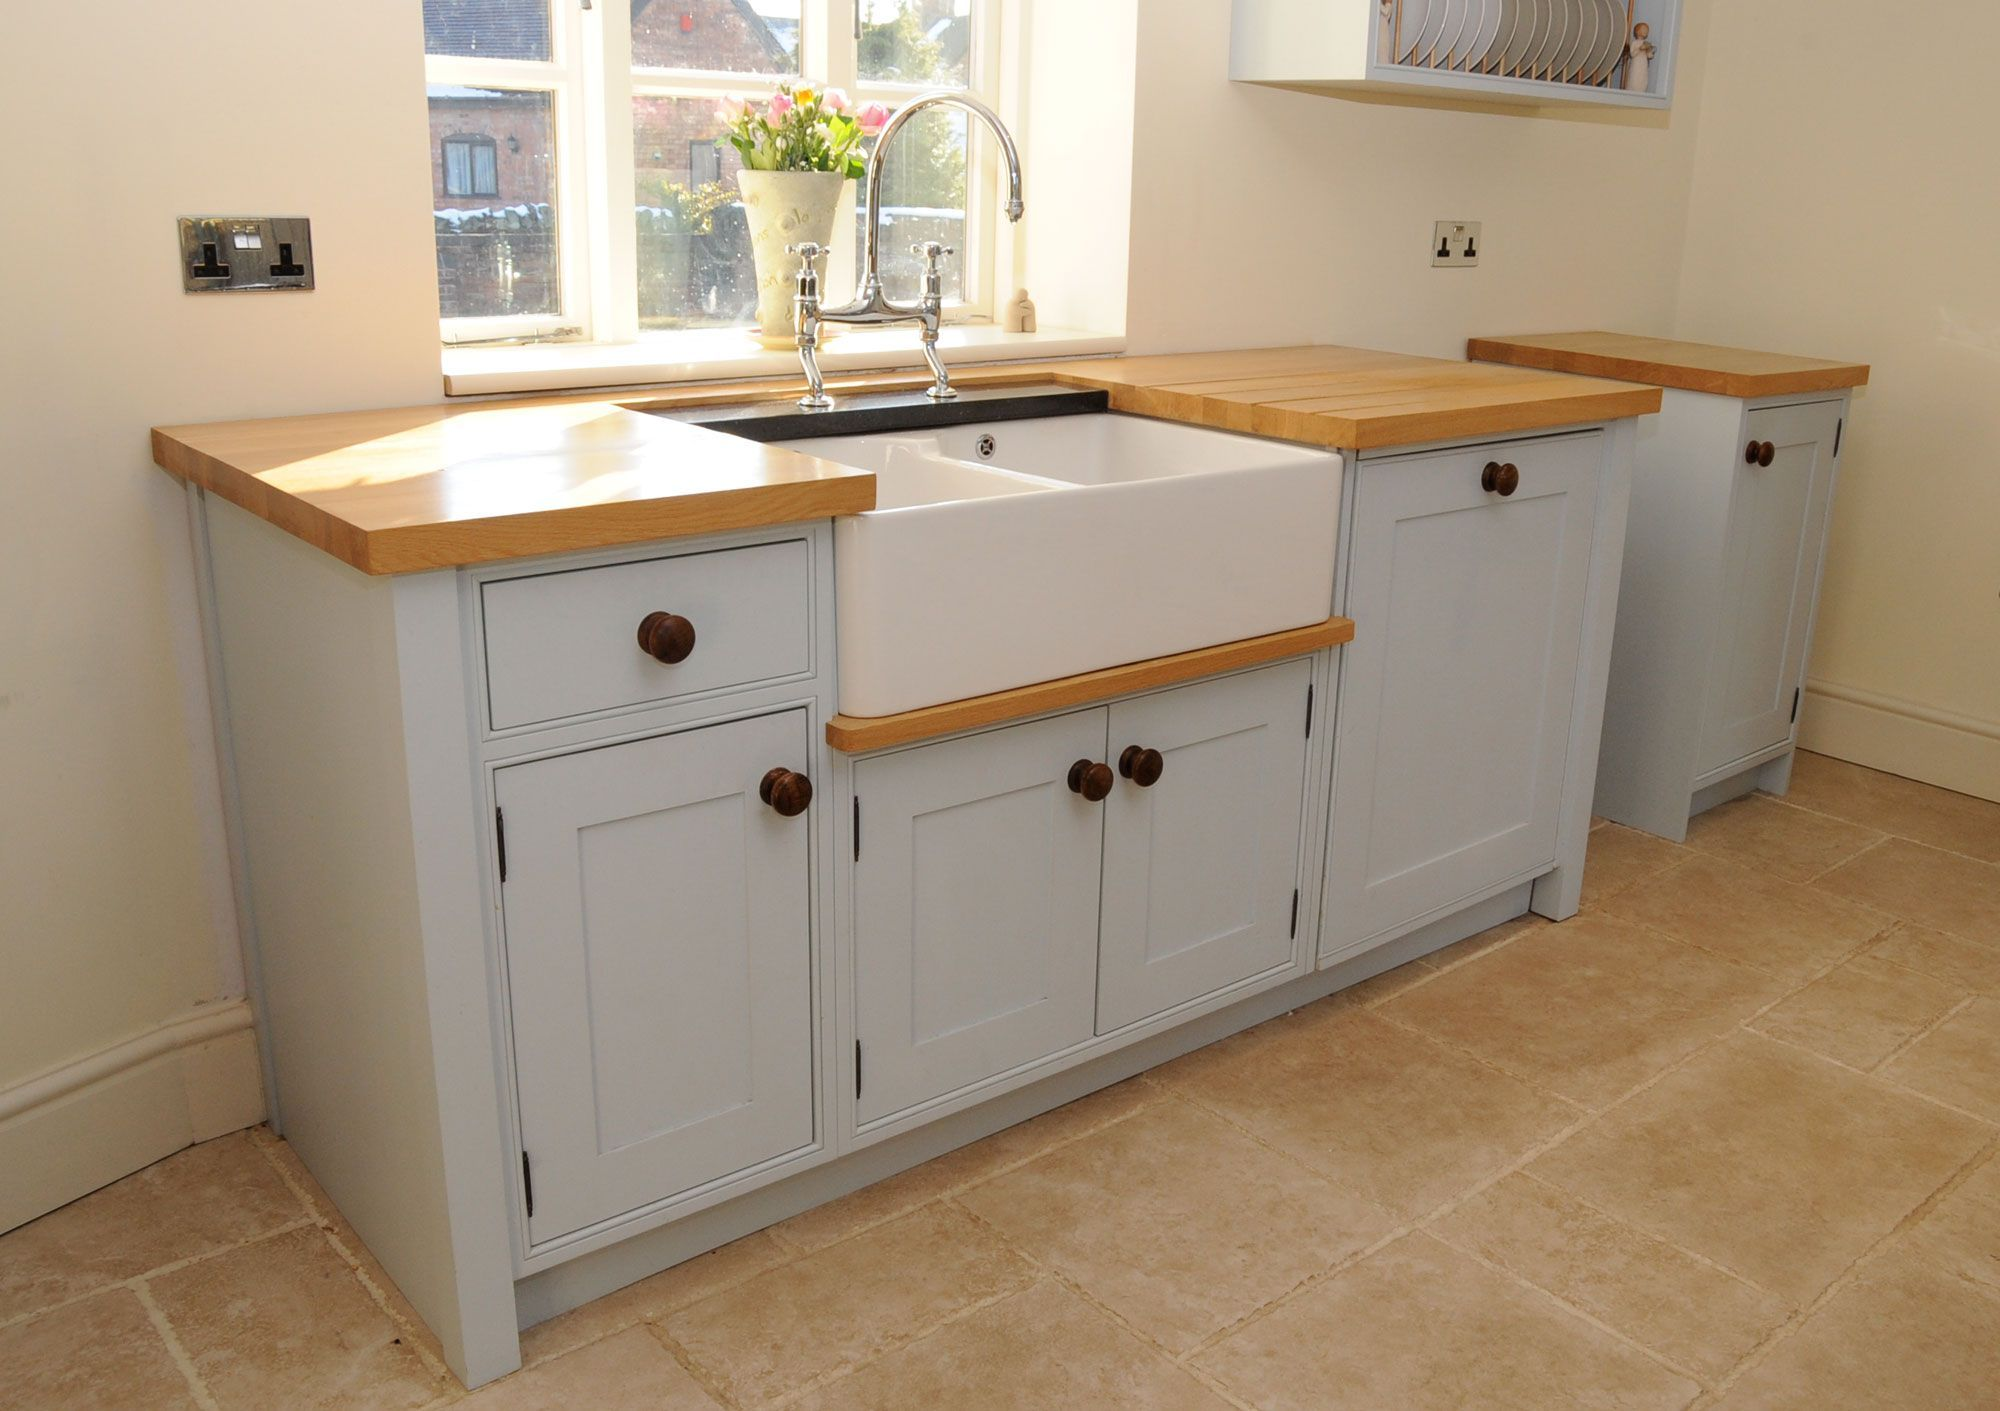 Browse Photos Of Freestanding Kitchen Cabinets Find Ideas And Inspiration For Freestanding Kitchen Cabinets To Add To Your Own Freestanding Kitchen Kitchen Sink Design Free Standing Kitchen Cabinets